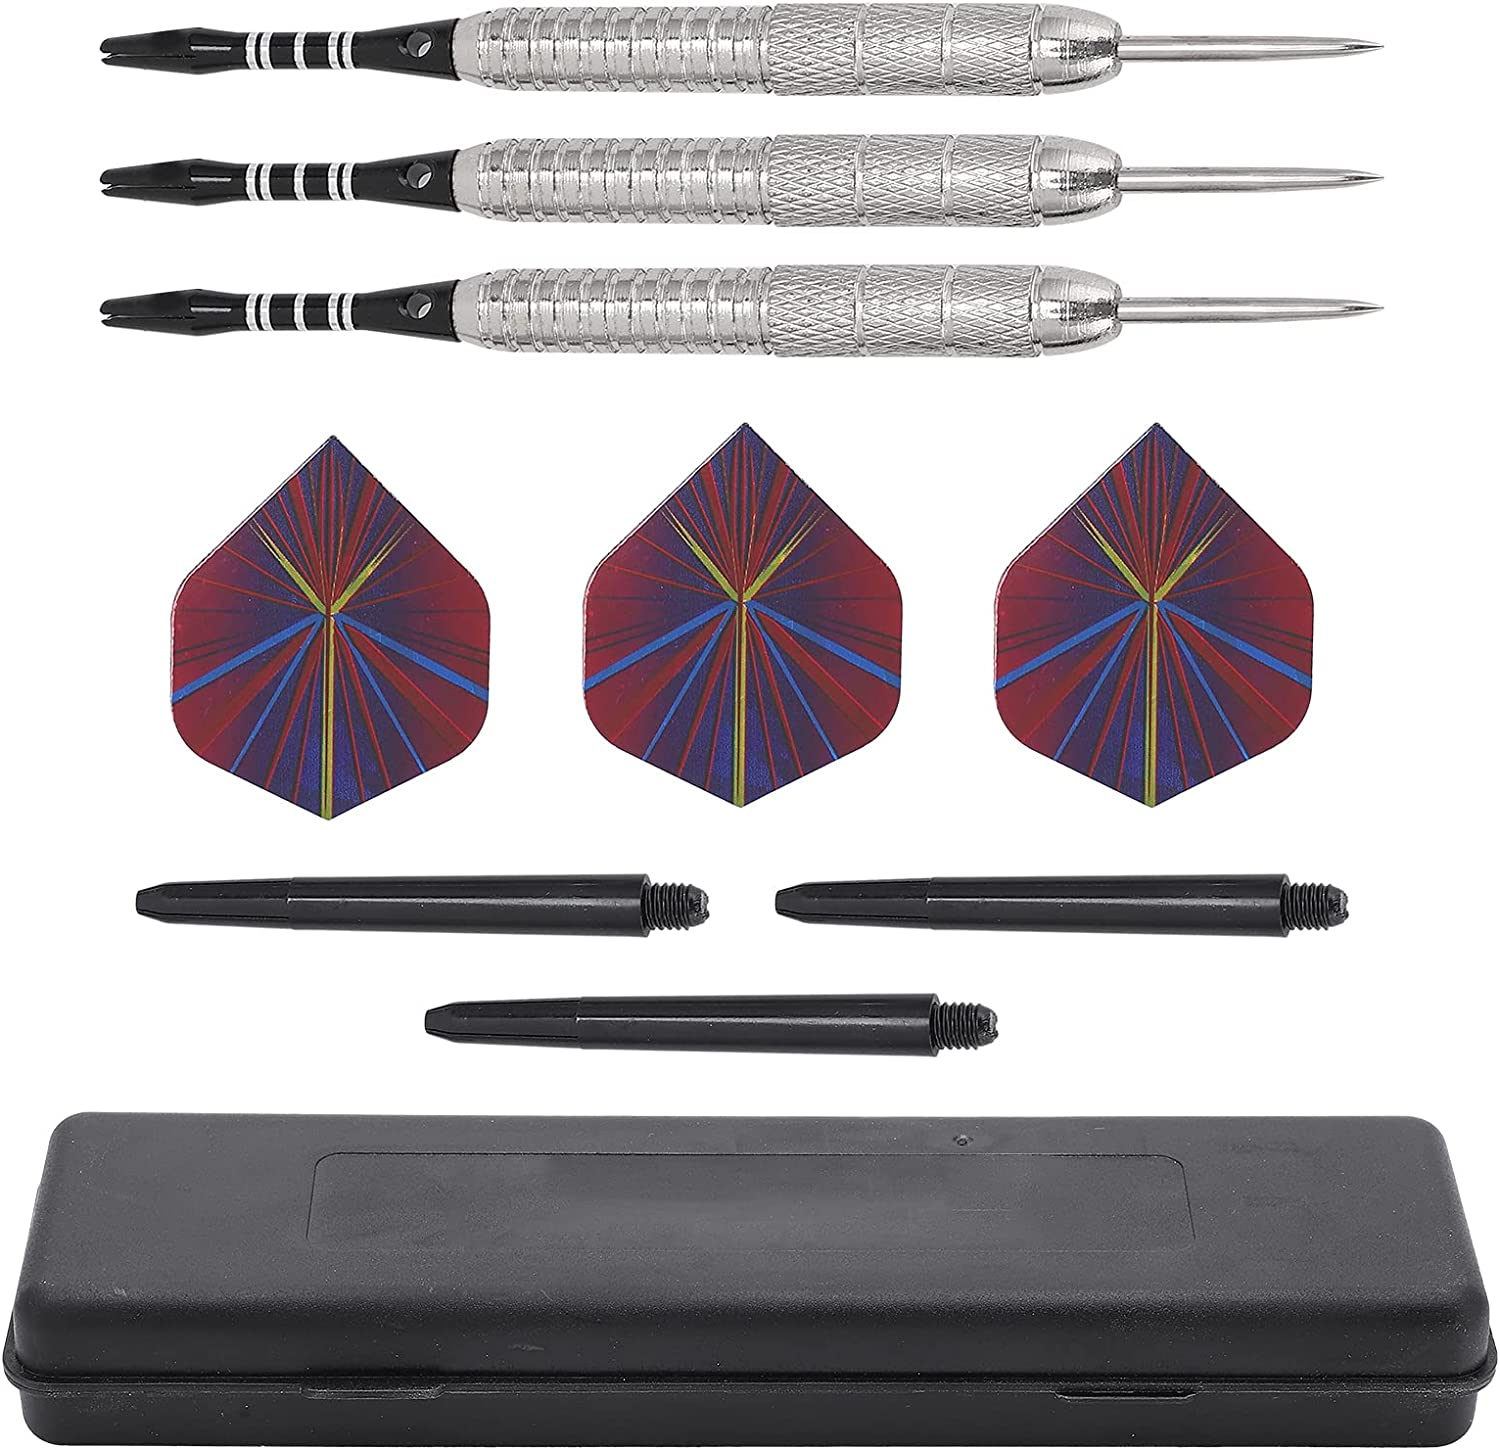 Recommendation CUEA Professional Darts 3pcs Safety Exquisi Steel Set Tip New Free Shipping